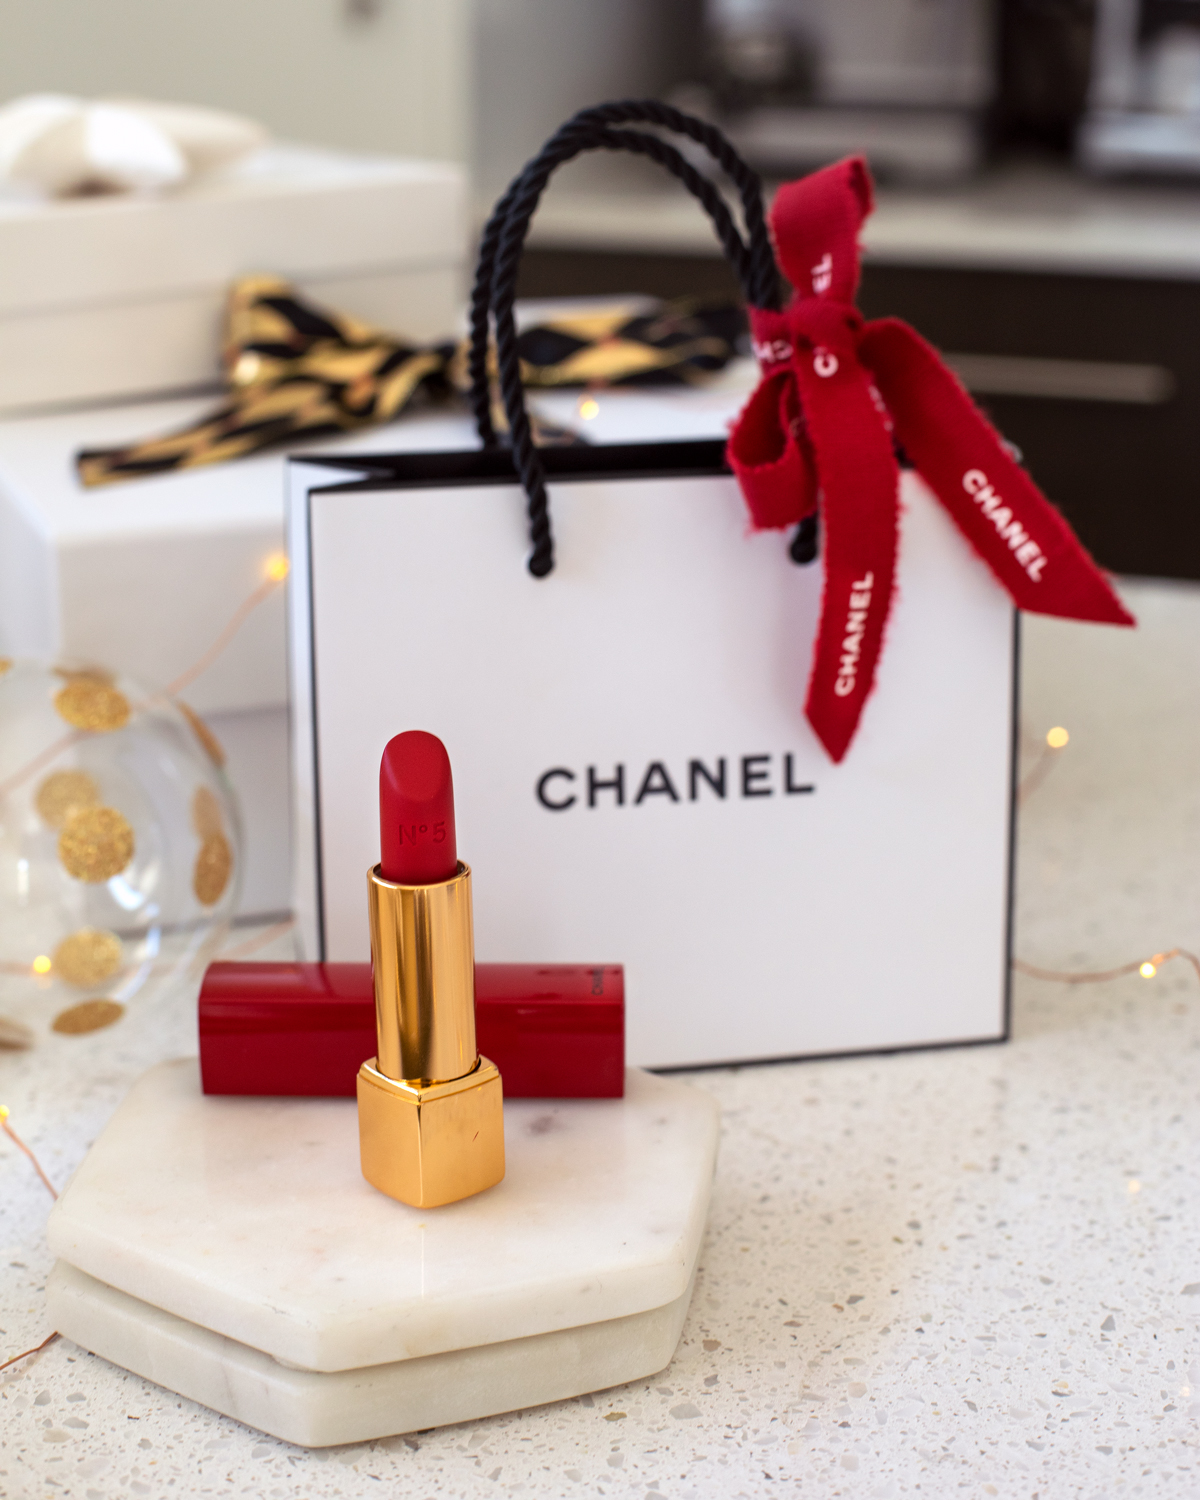 2018 Christmas gift guide Inspiring Wit blog featuring beauty gift ideas Chanel Beauty red lipstick No.5